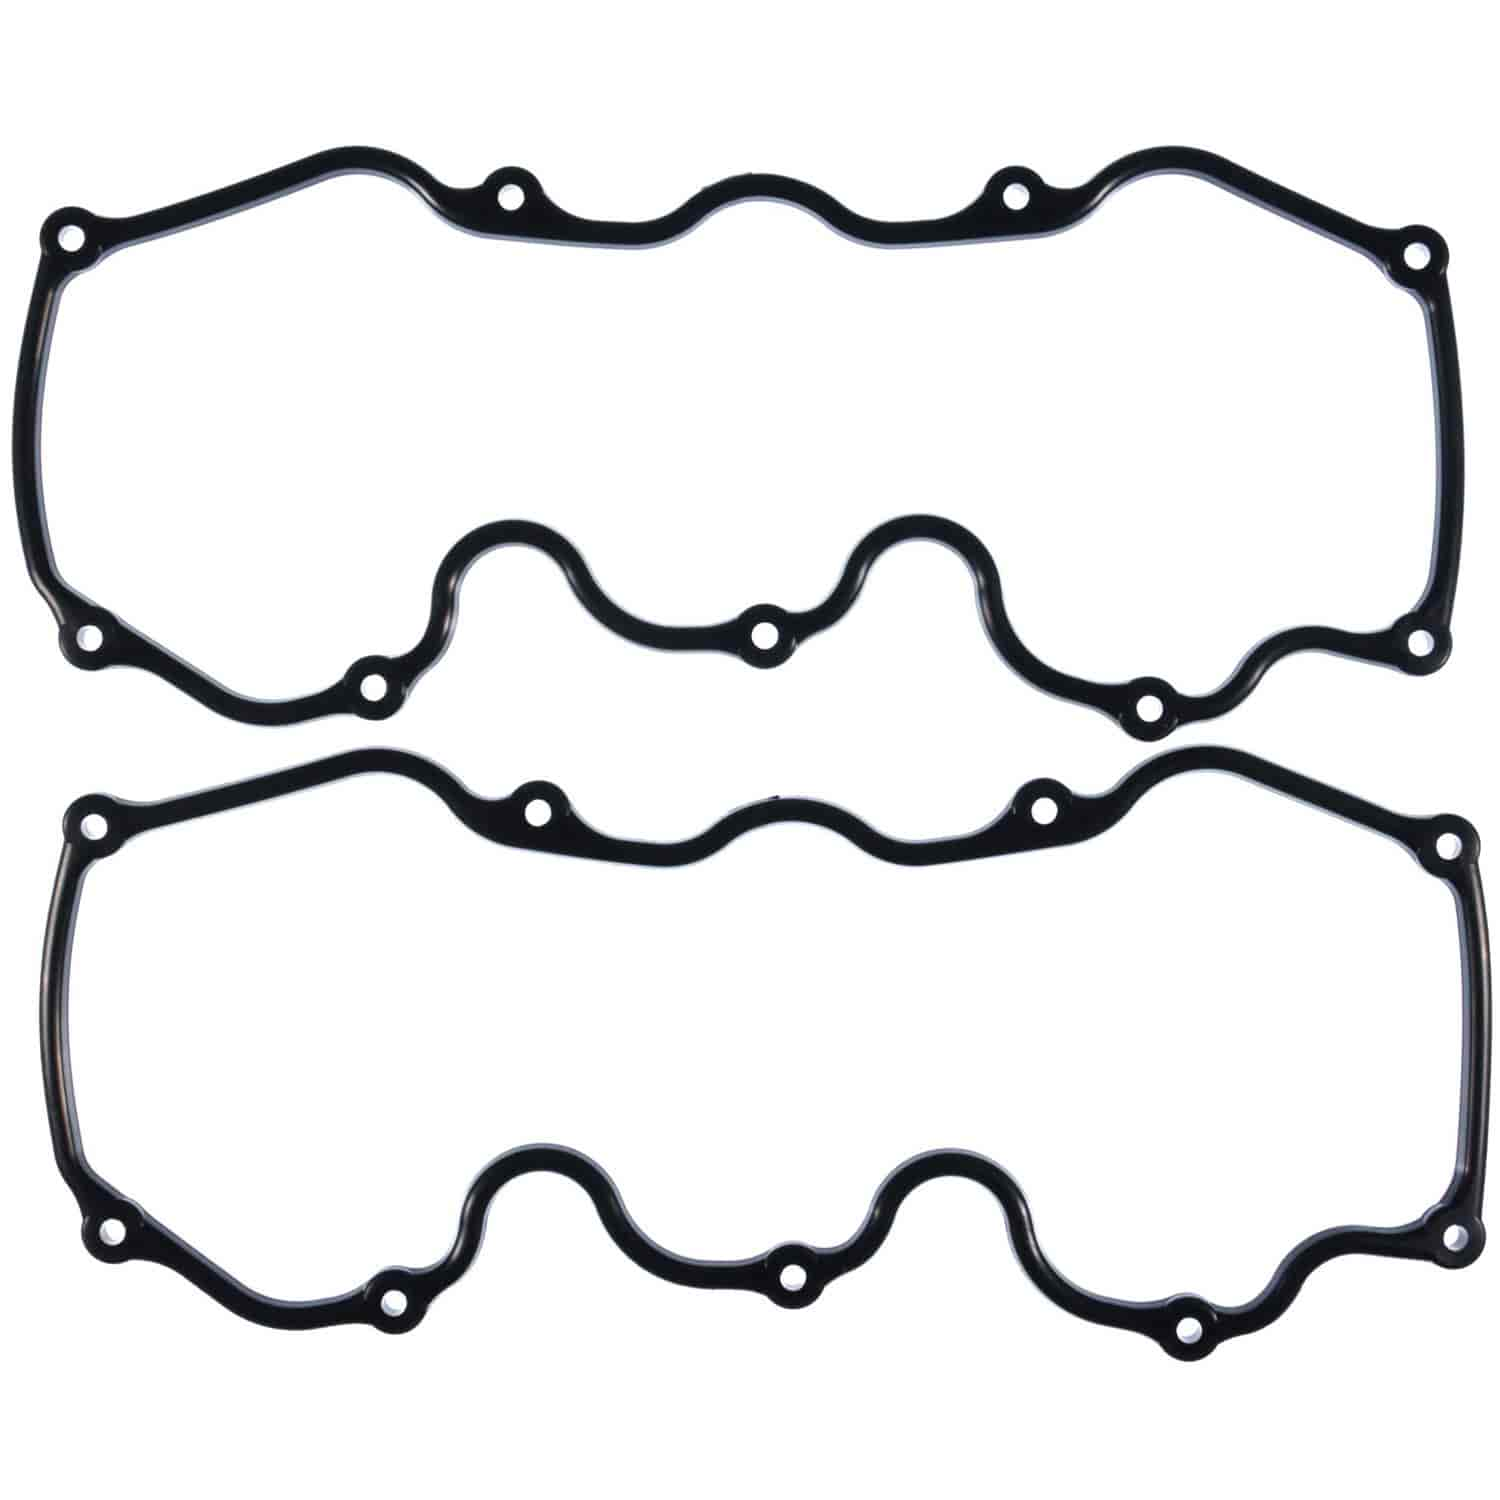 Clevite MAHLE VS38376: Valve Cover Gasket Set for 1984